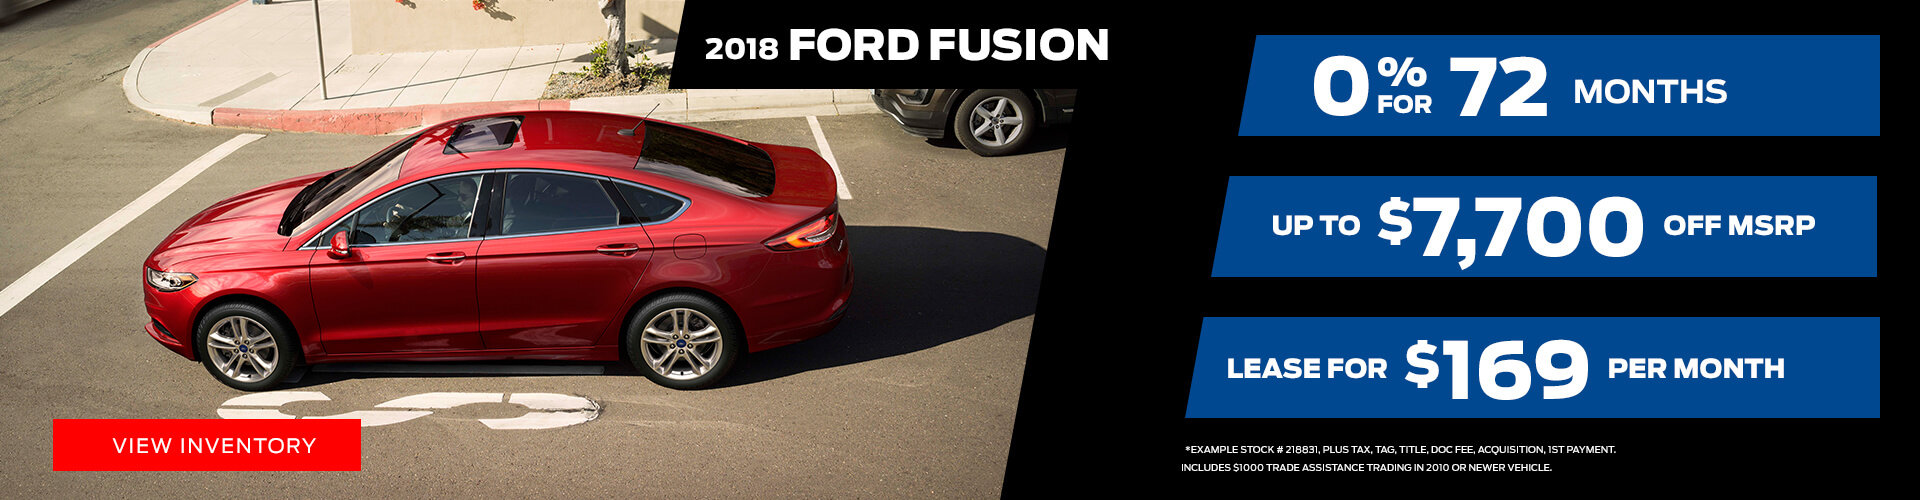 Special offer on 2018 Ford Fusion 2018 Ford Fusion Special Offer